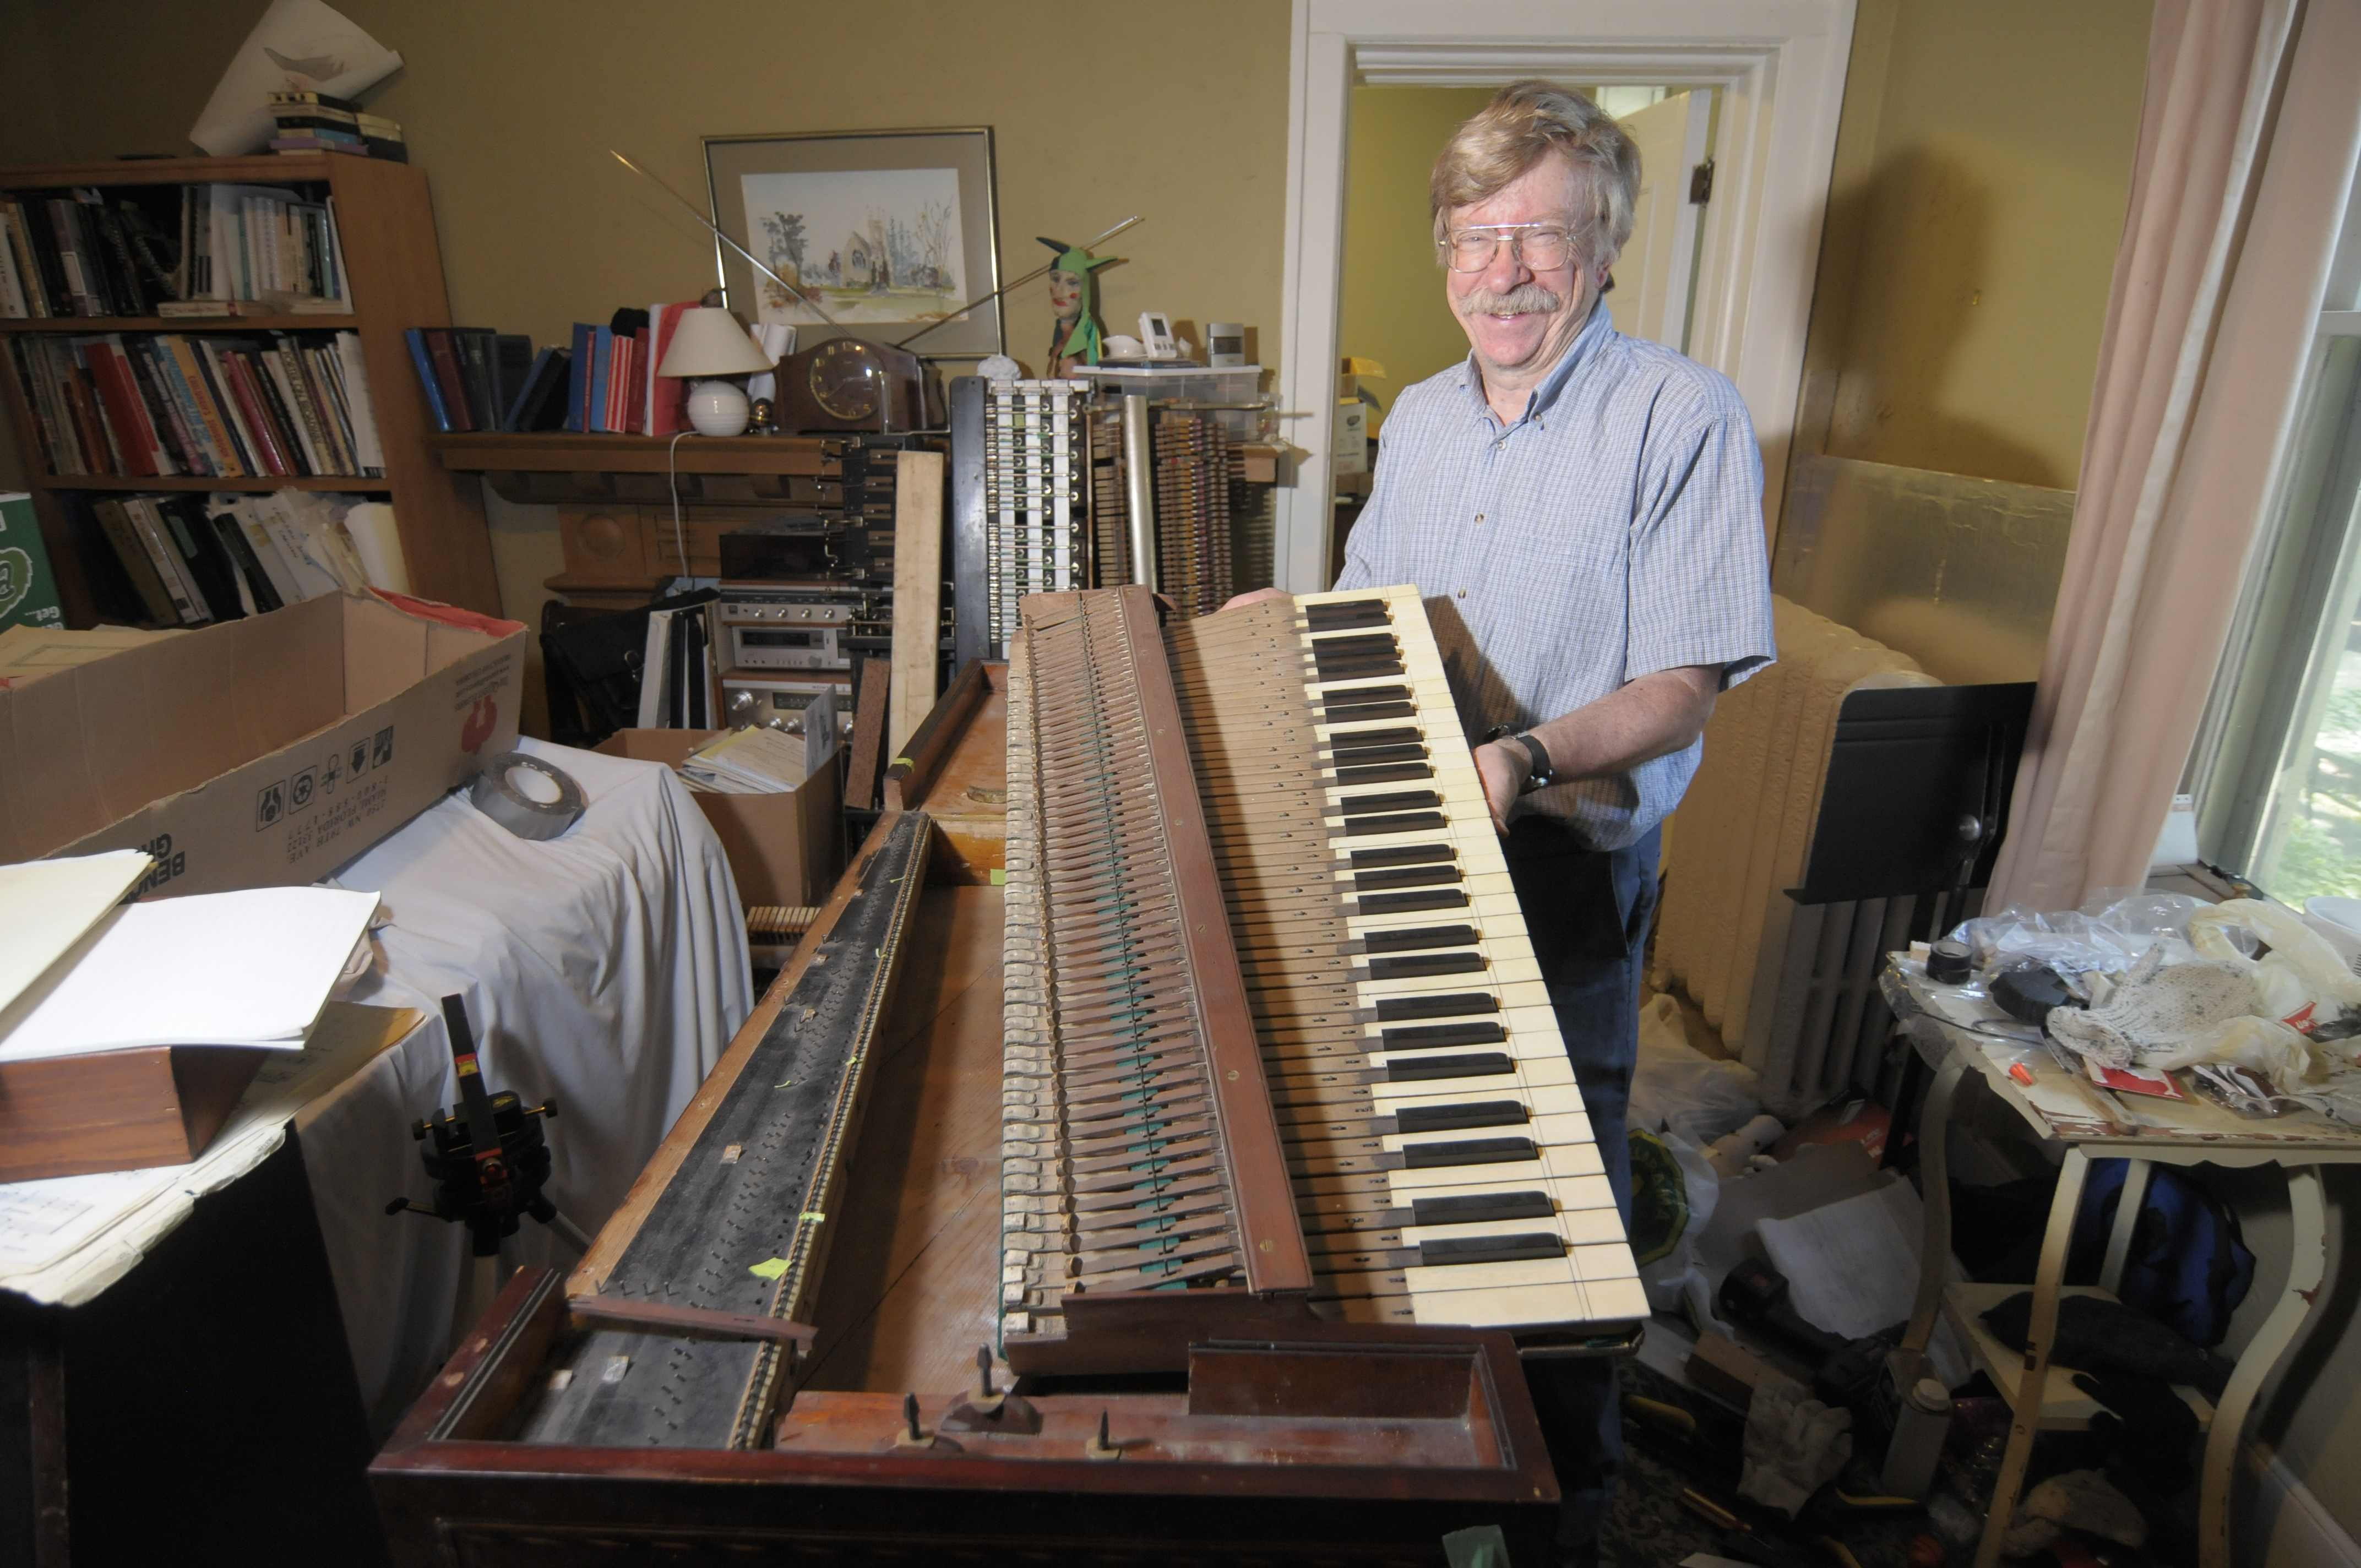 ARTFUL BLOGGER: On July 25, you, too, can hear the 1777 piano that was once 'fit for a queen'